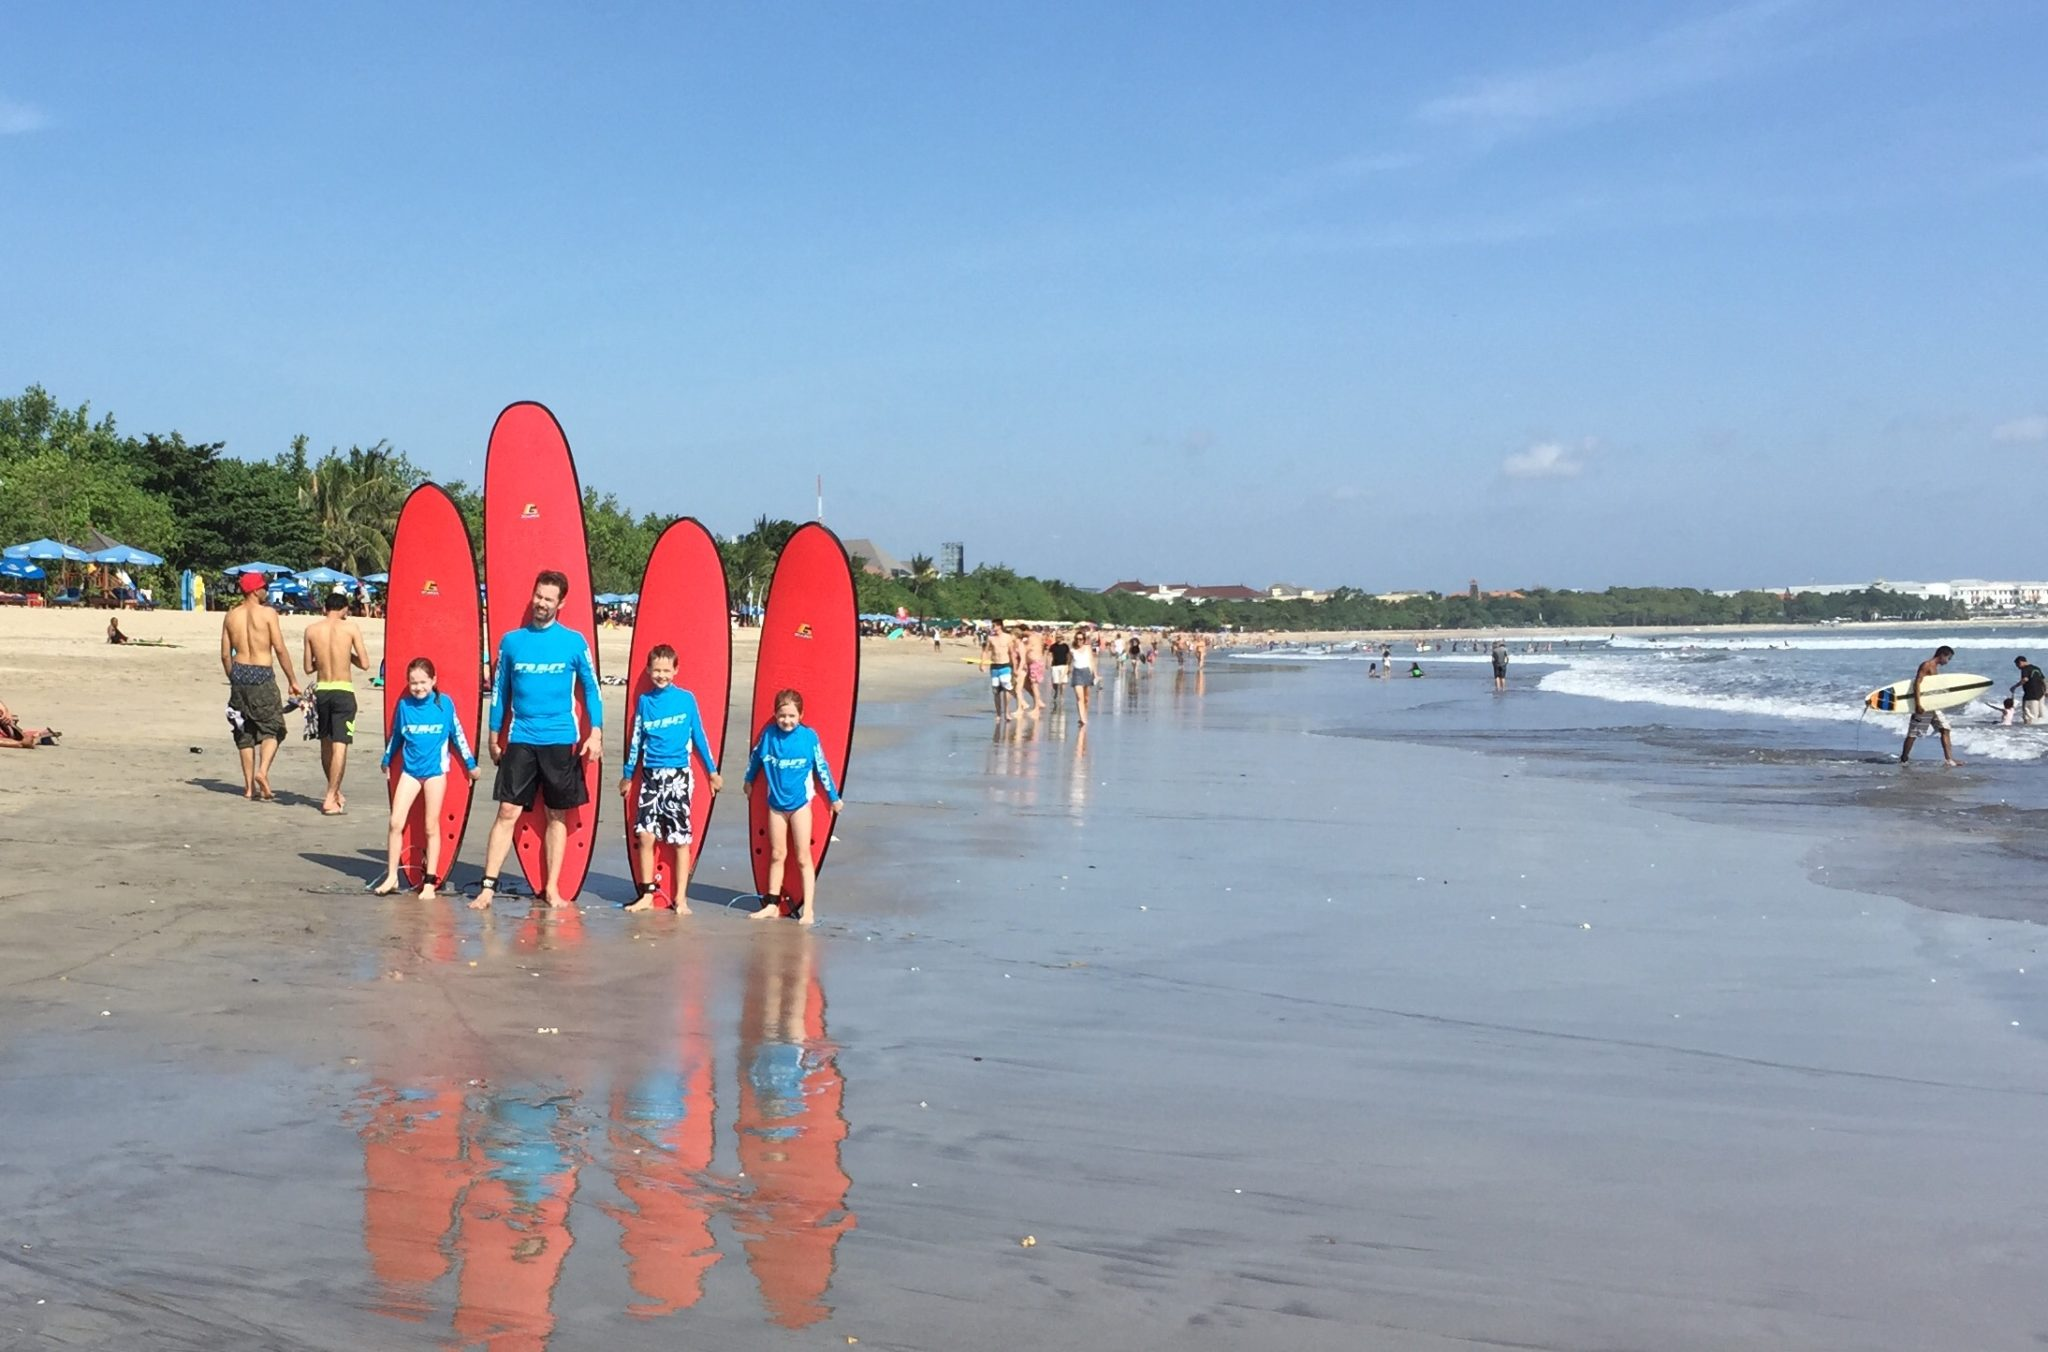 Wonders of Bali Island – Learning to Surf with the Pros